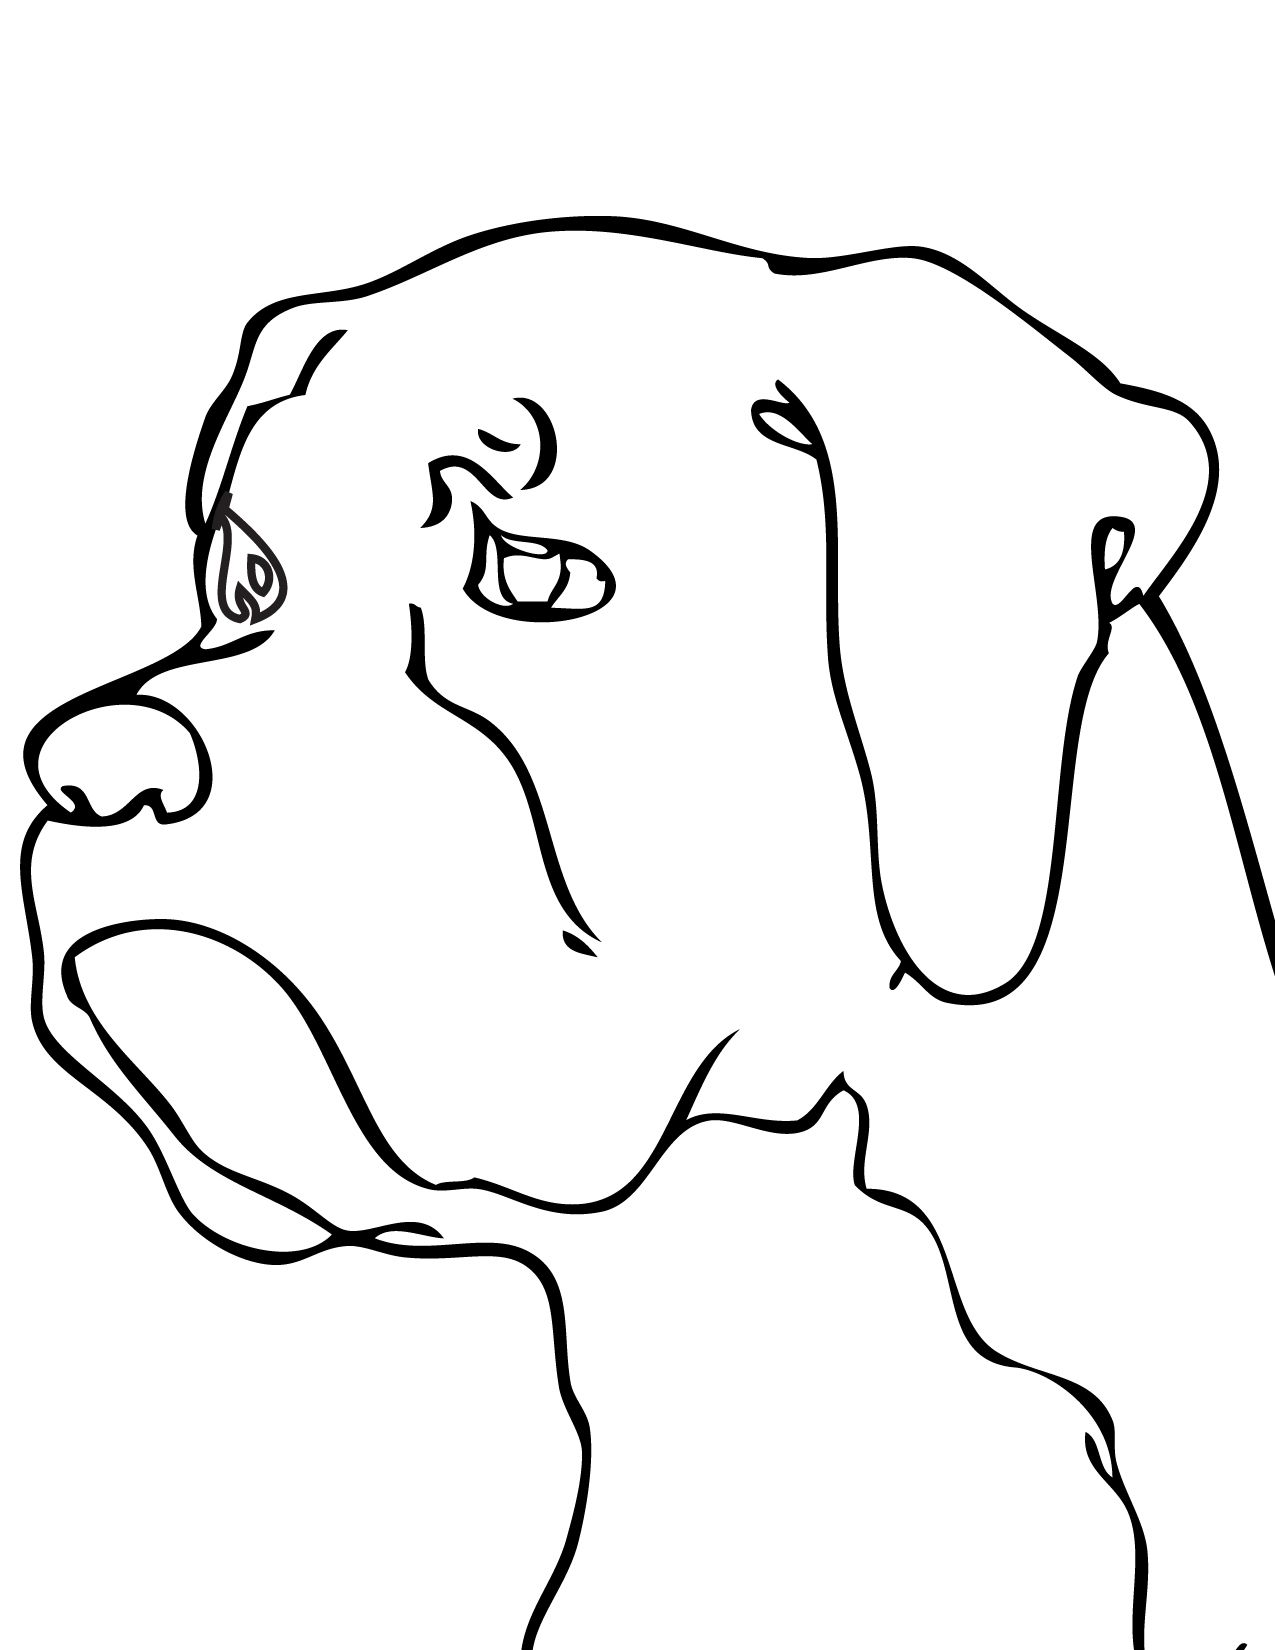 Dog Coloring Pages | Print This Page | Dogs Coloring Pages ...